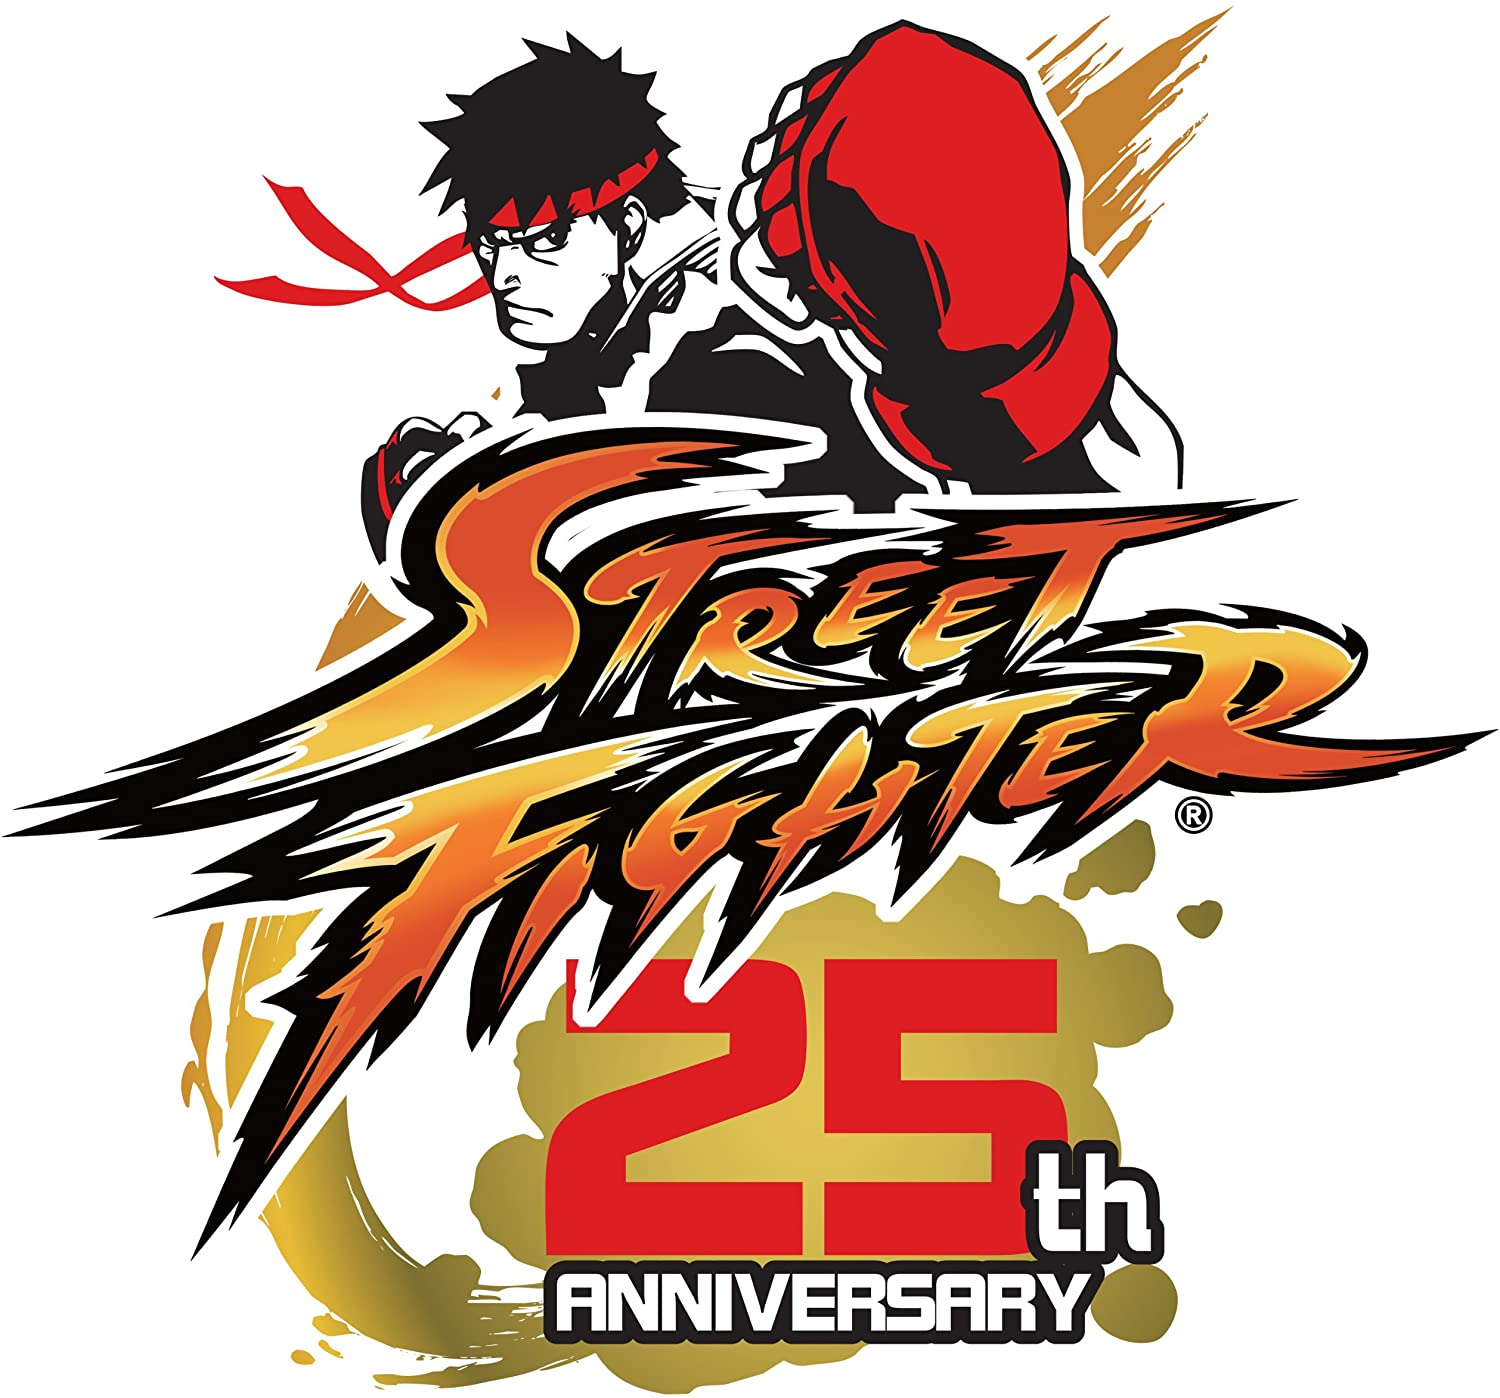 25th street fighter anniversary